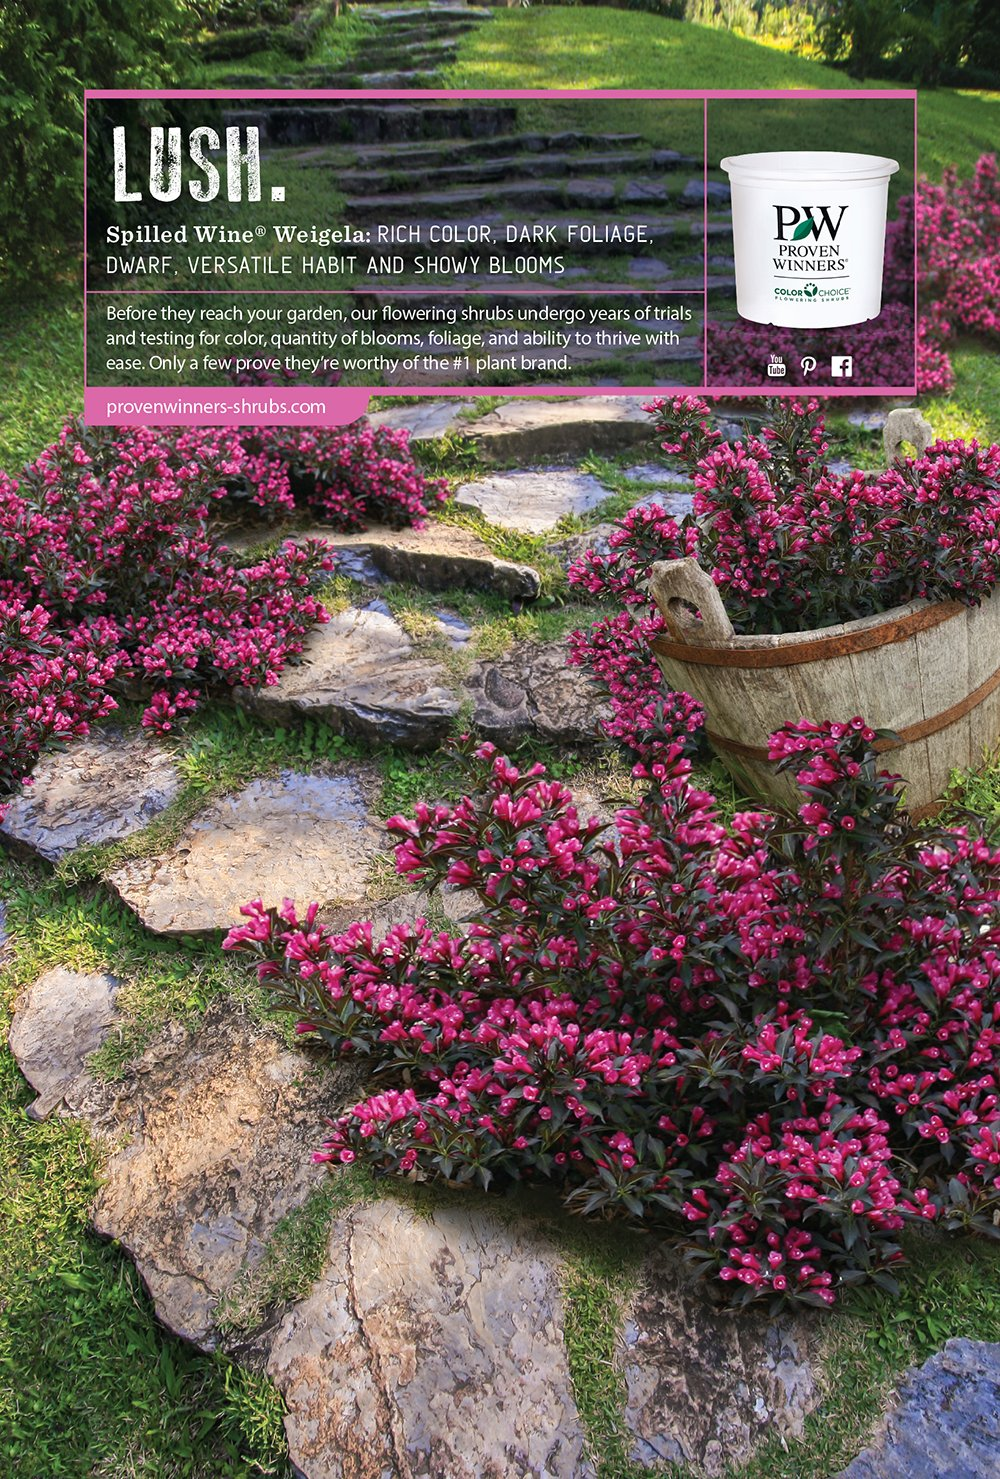 273 & Proven Winners \u2013 Flowering Shrubs \u2013 Proven Winners ...